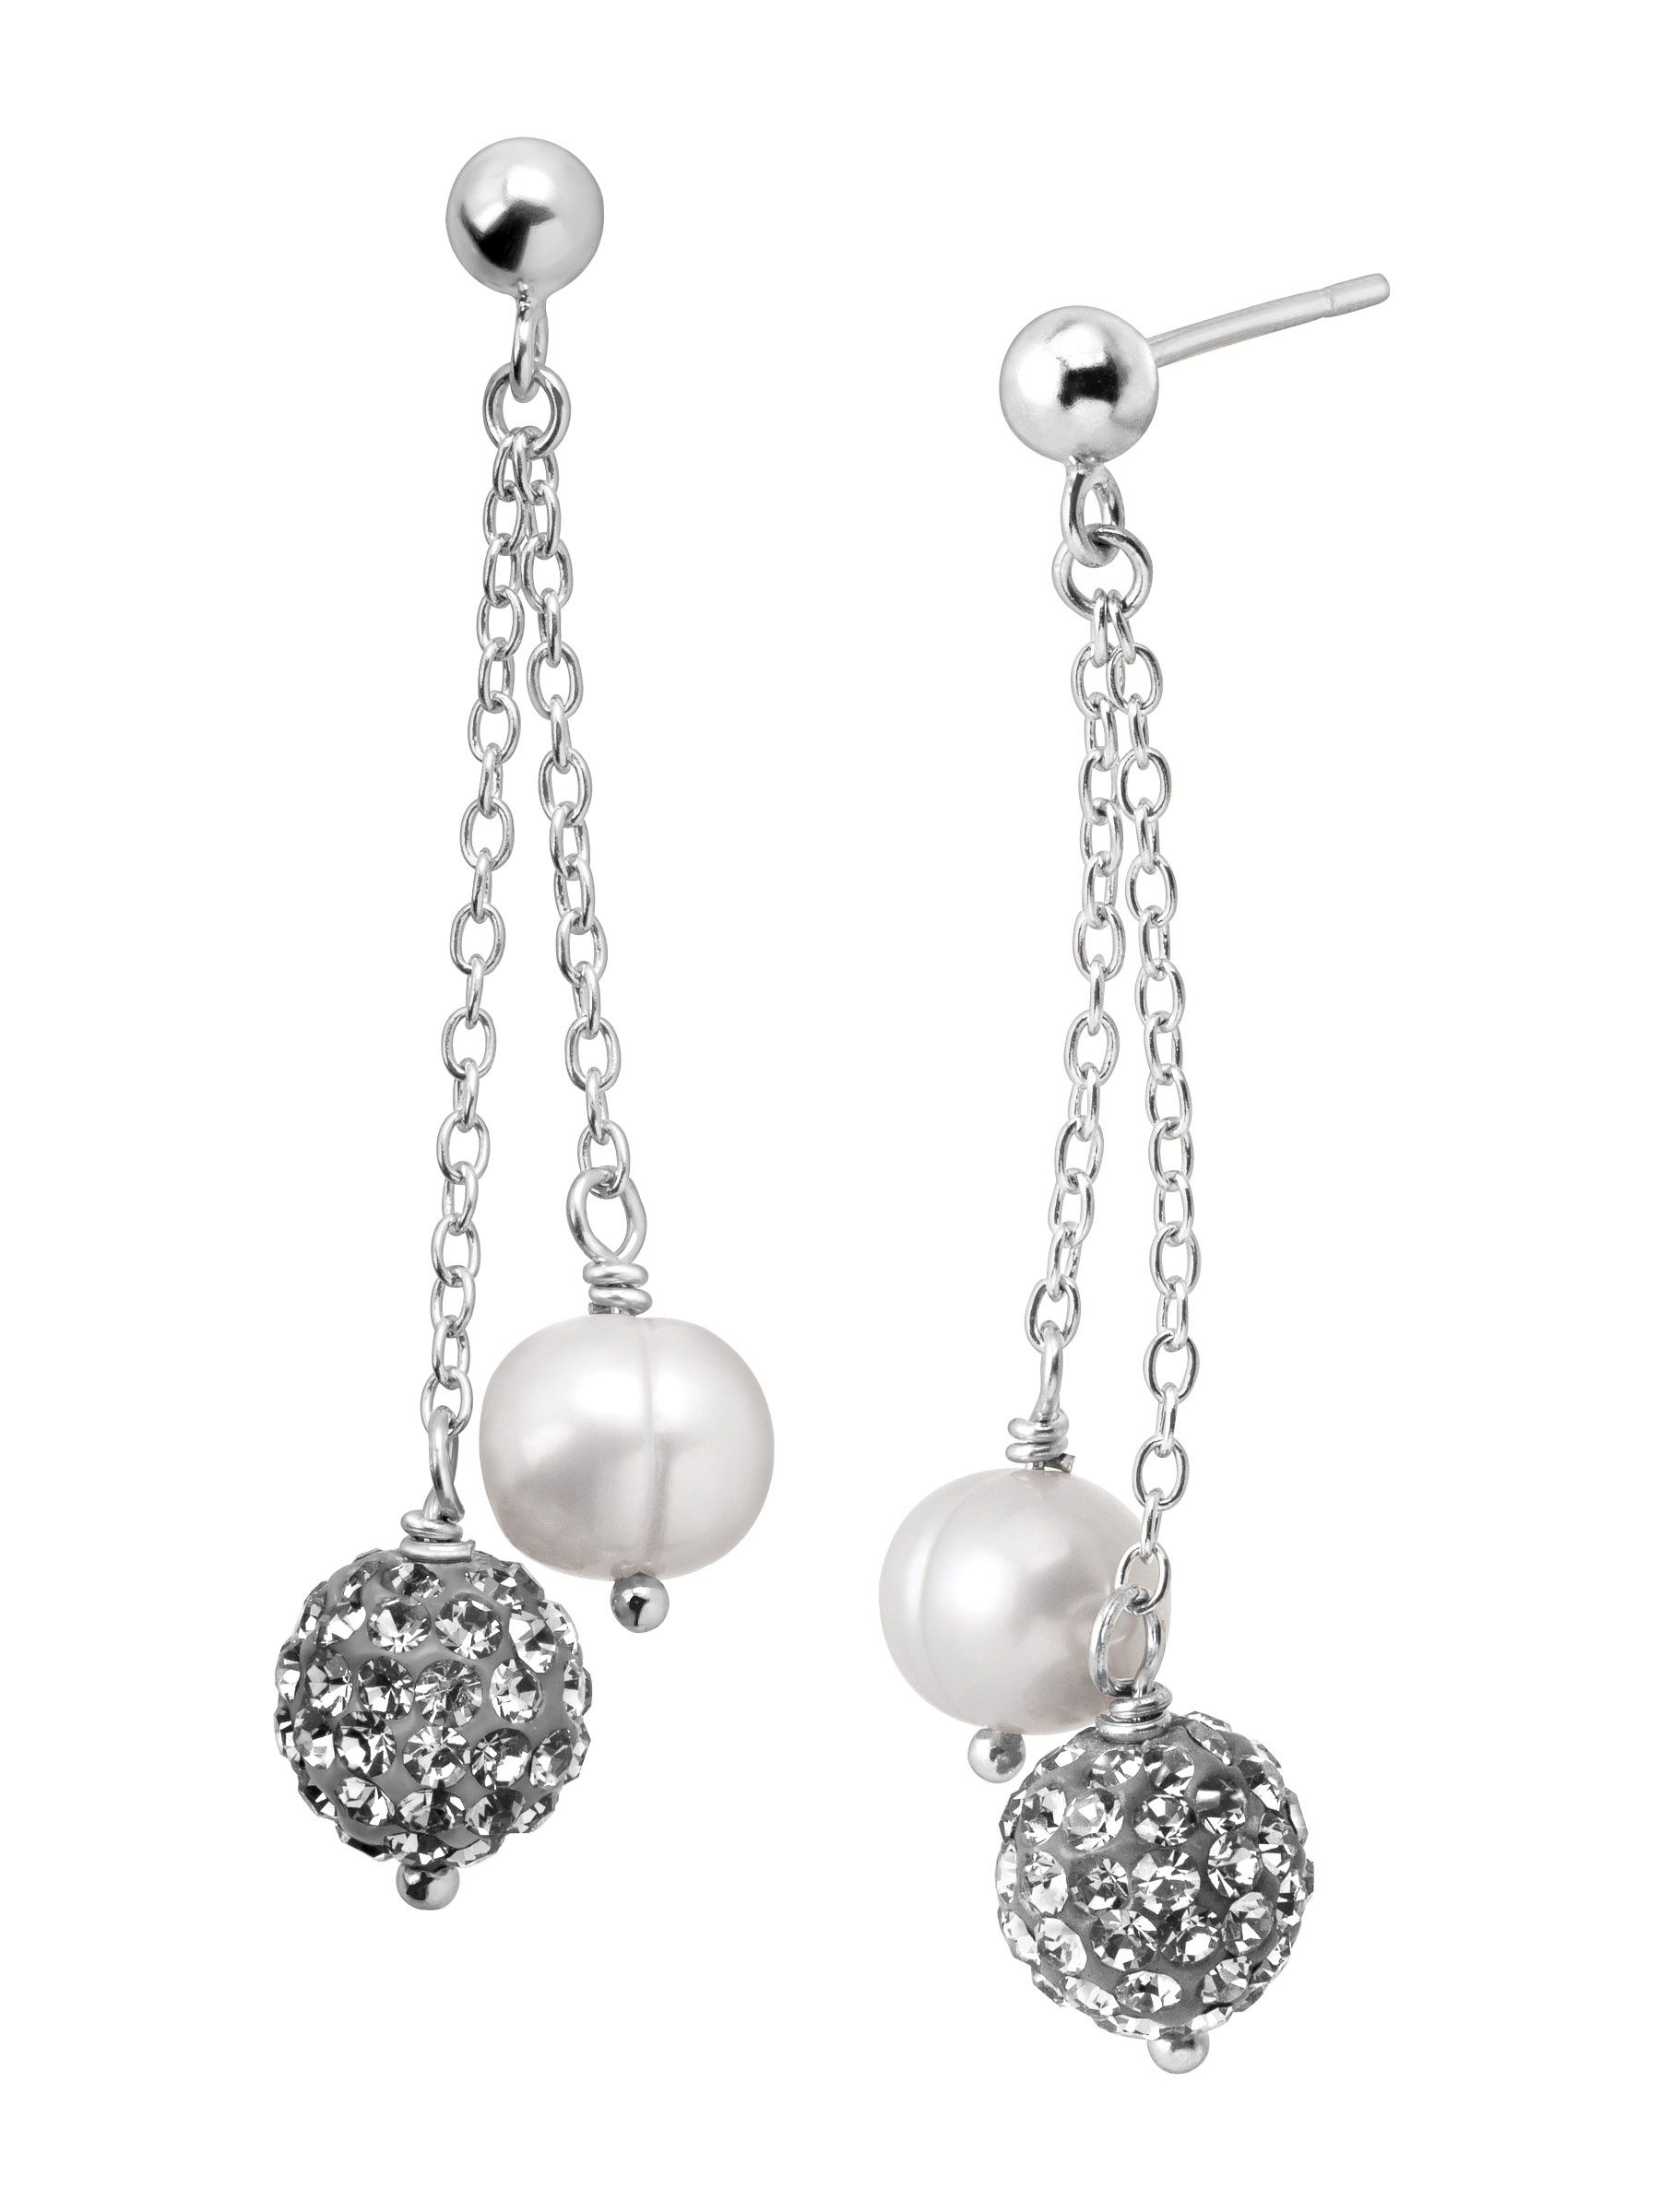 Honora 6-7 mm Grey Freshwater Pearl Drop Earrings with Crystals in Sterling Silver